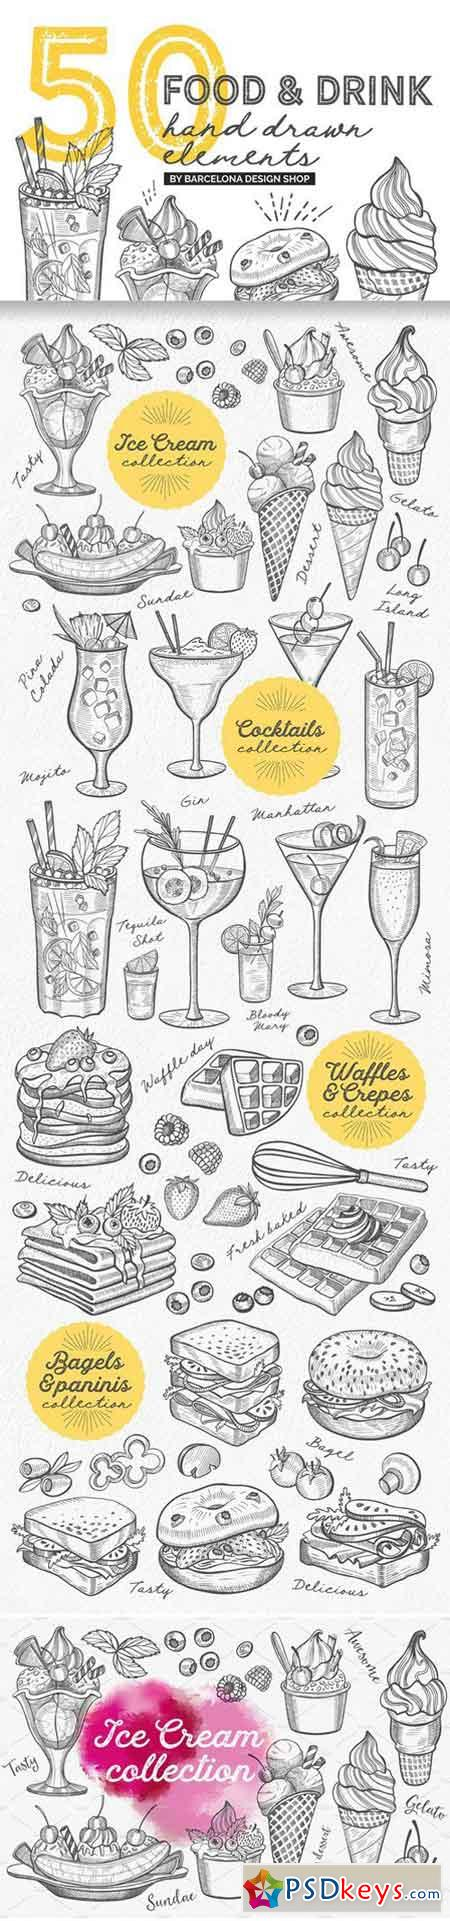 Food & Drink Illustrations 2379402